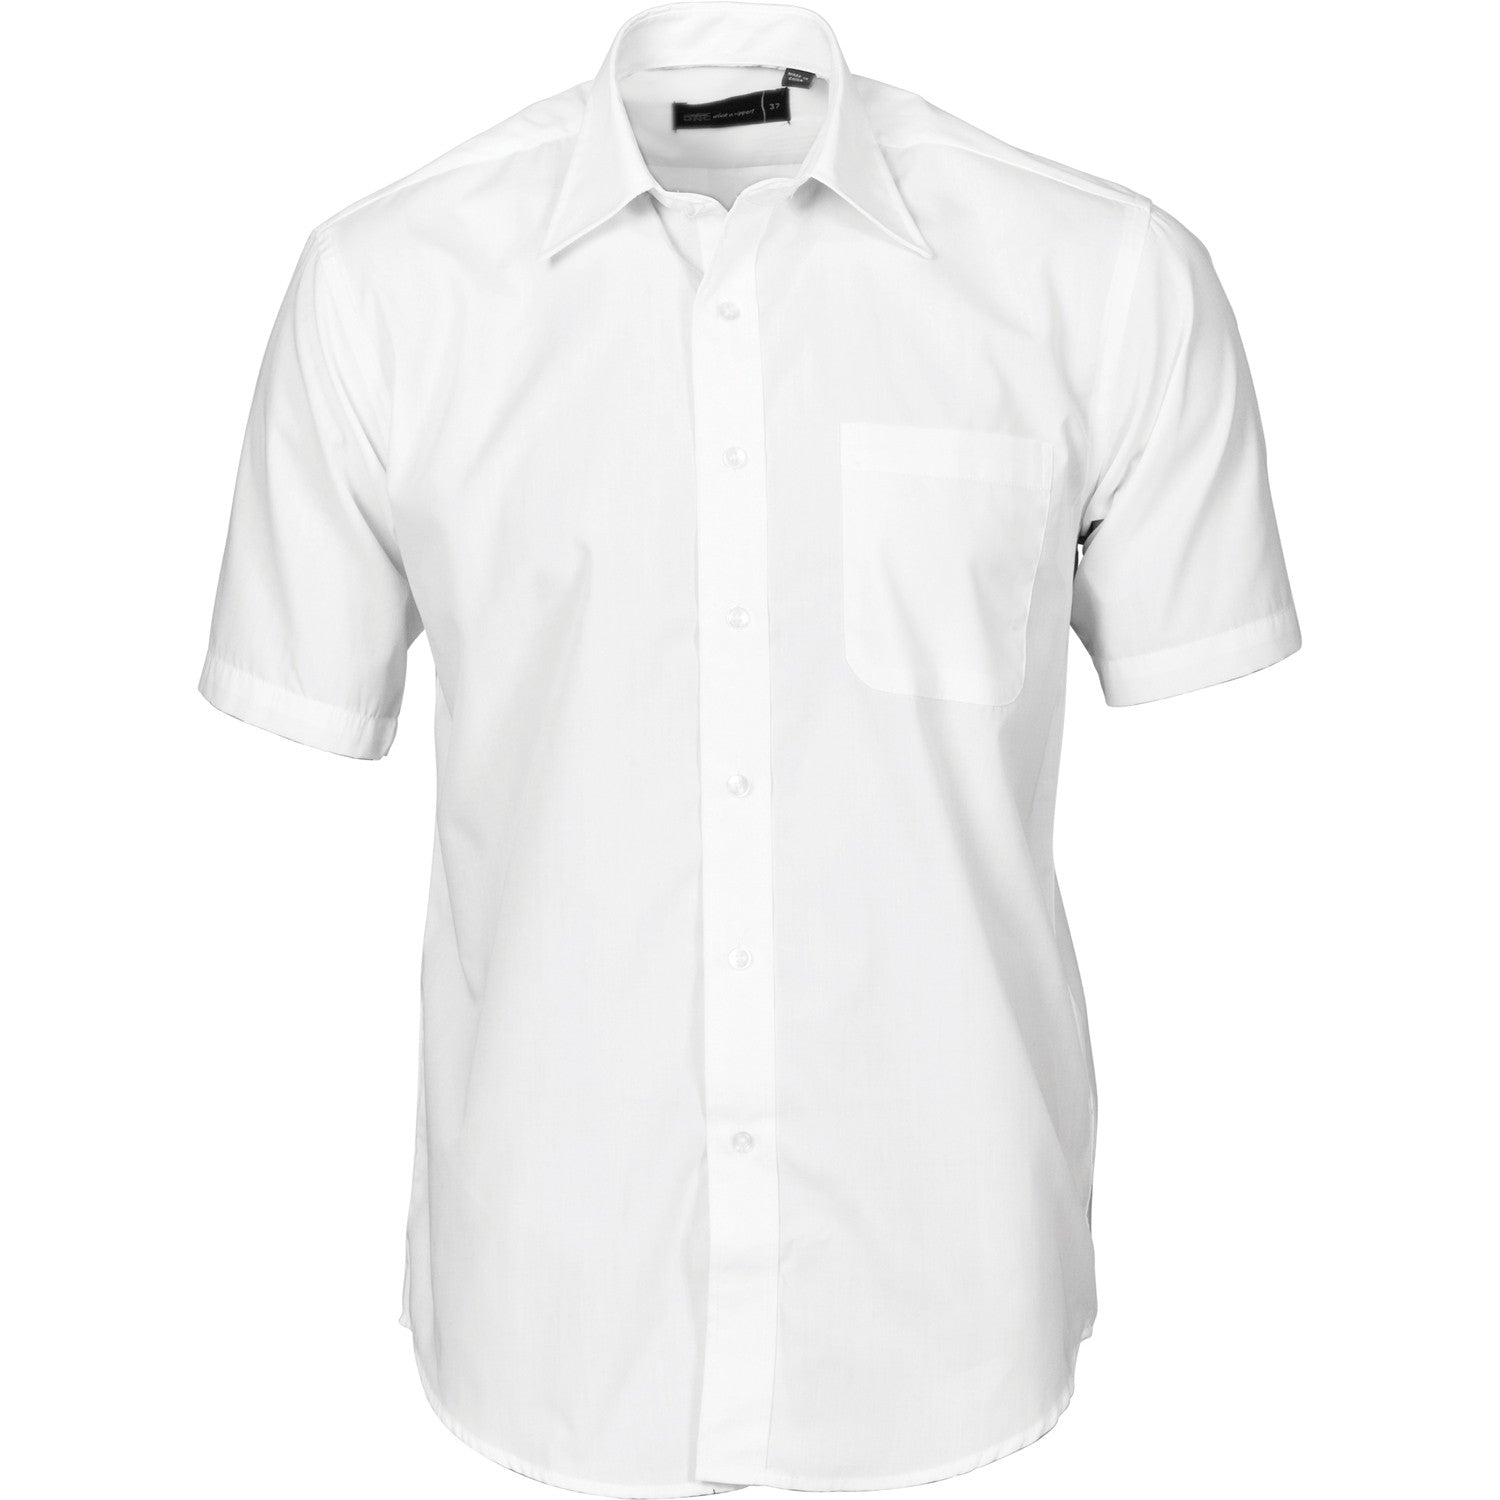 DNC Polyester Cotton S/S Business Shirt (4131)